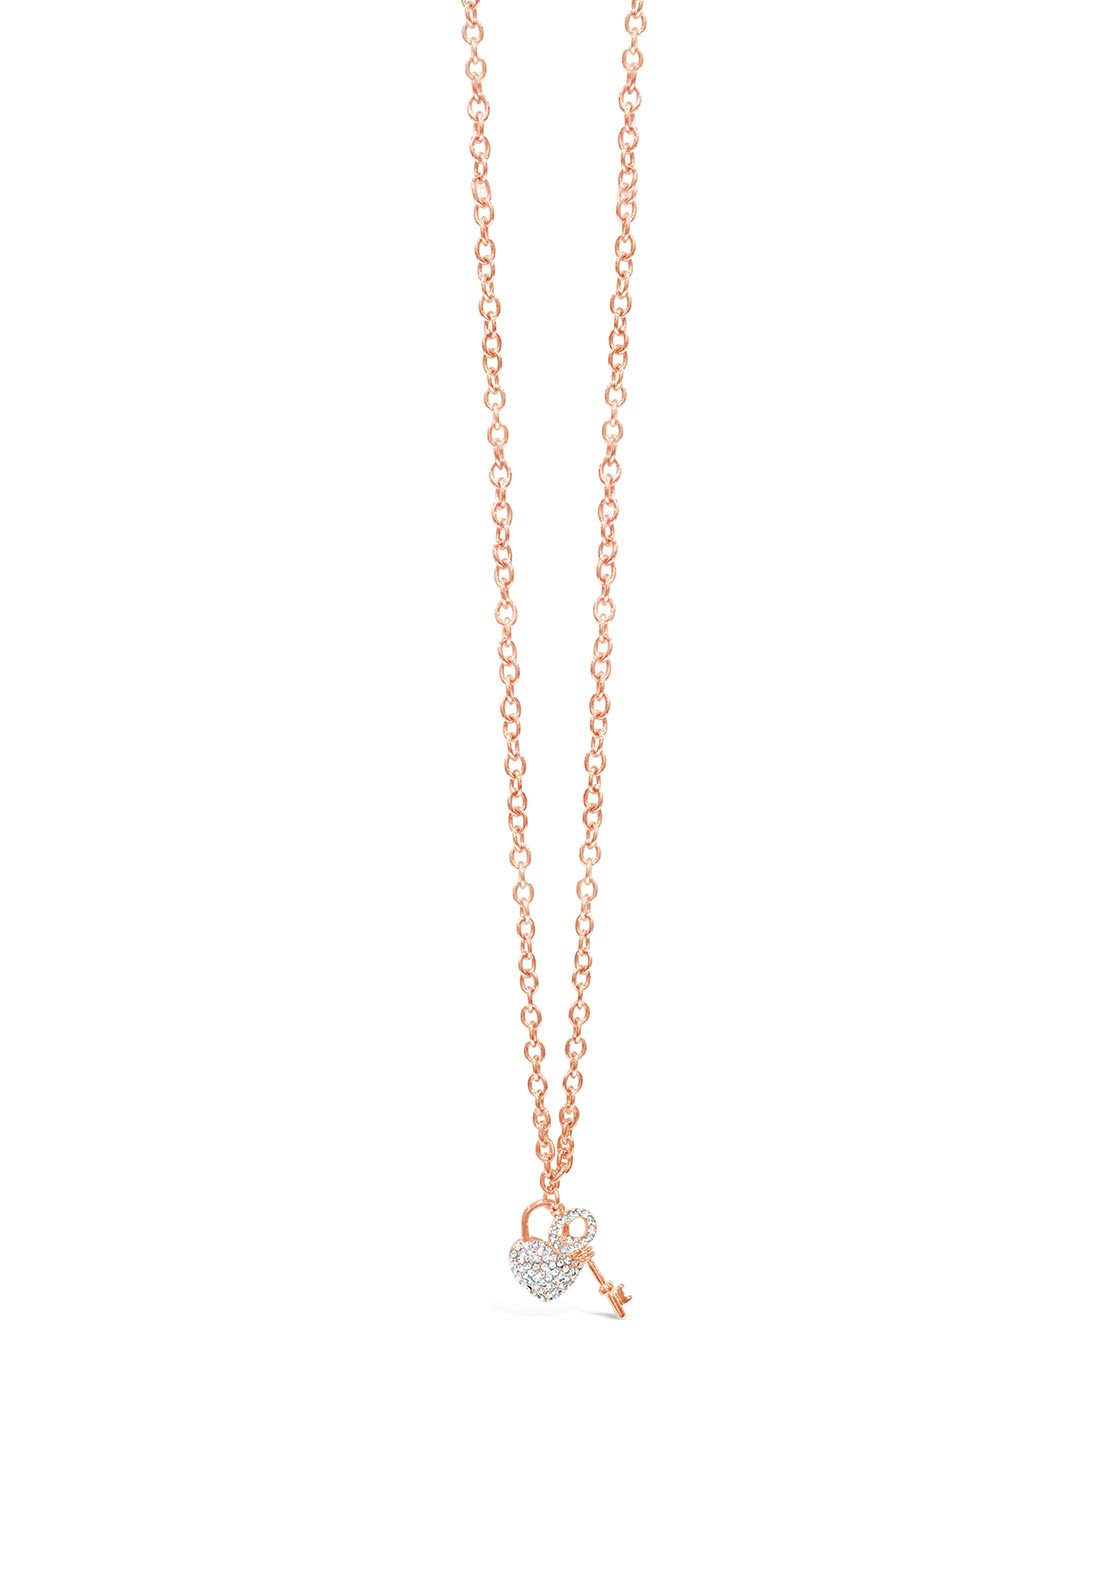 Absolute Lock Key Crystal Necklace Rose Gold Mcelhinneys